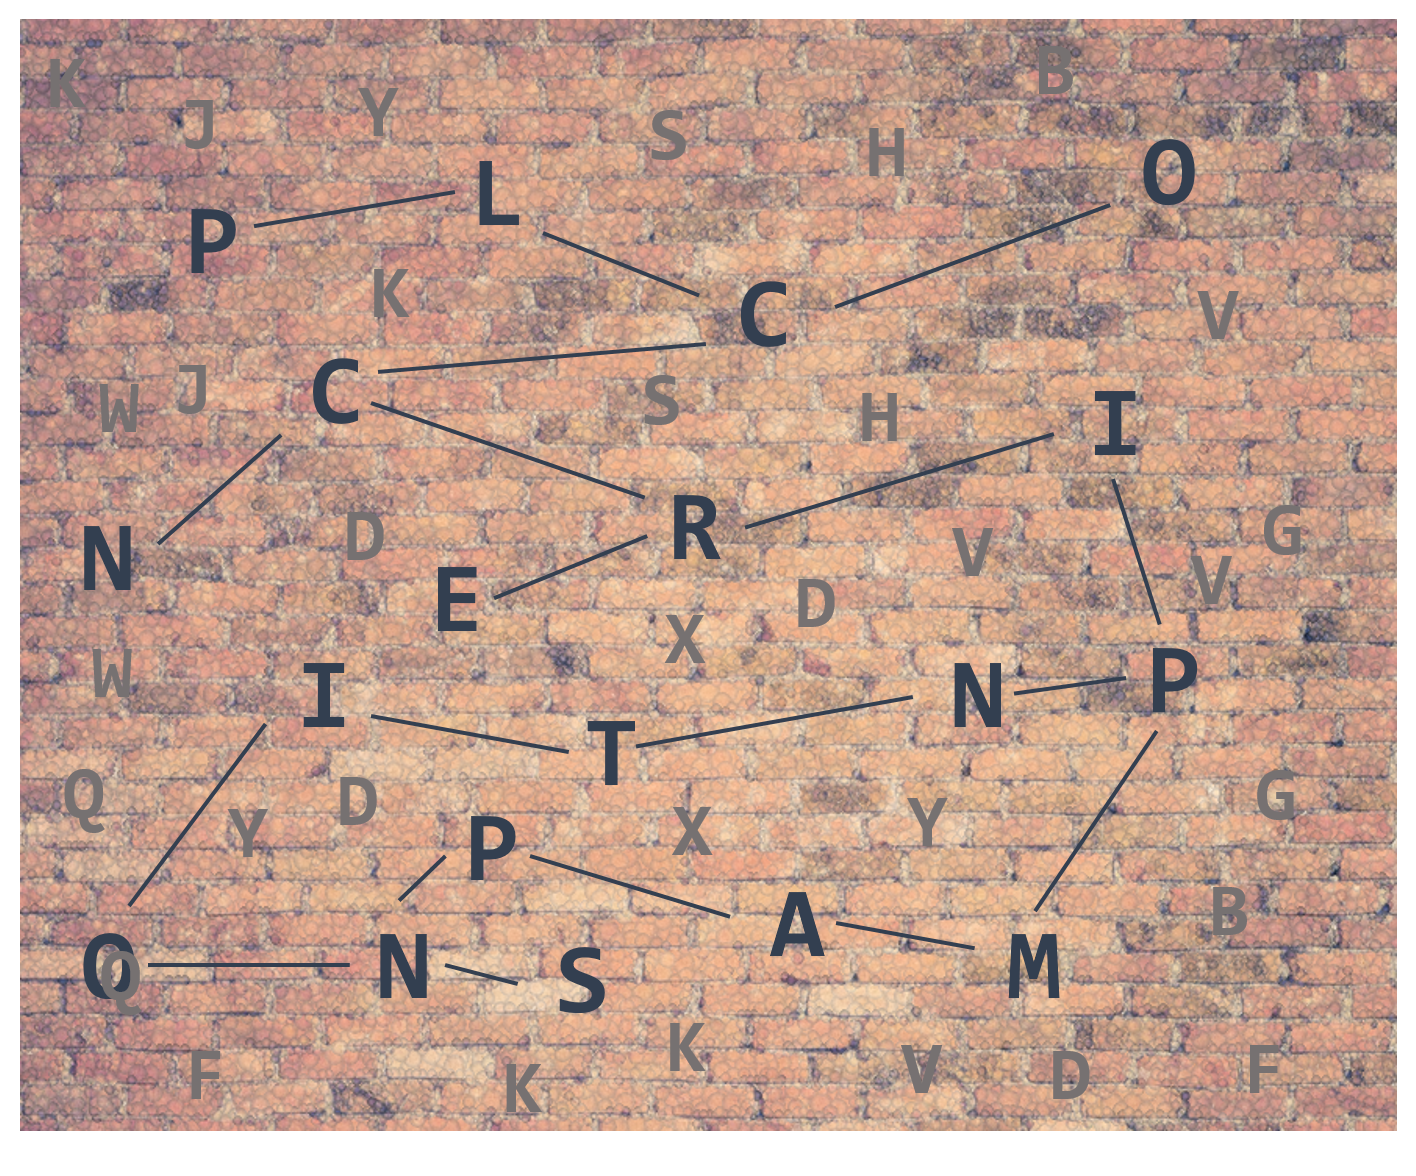 Shows a lot of letters on a brick wall where the letters which are existing in the words Principal Component Analysis are bold and connected with lines. This should illustrate the Pricnipal Component Analysis in such a way that only the important letters are kind of extracted from a bunch of different letters. By omitting all non bold printed letters, we still can form the word Principal Component Analysis, that is by omitting the other letters, we reduce the size of the 'letter salad' without loosing too much information.